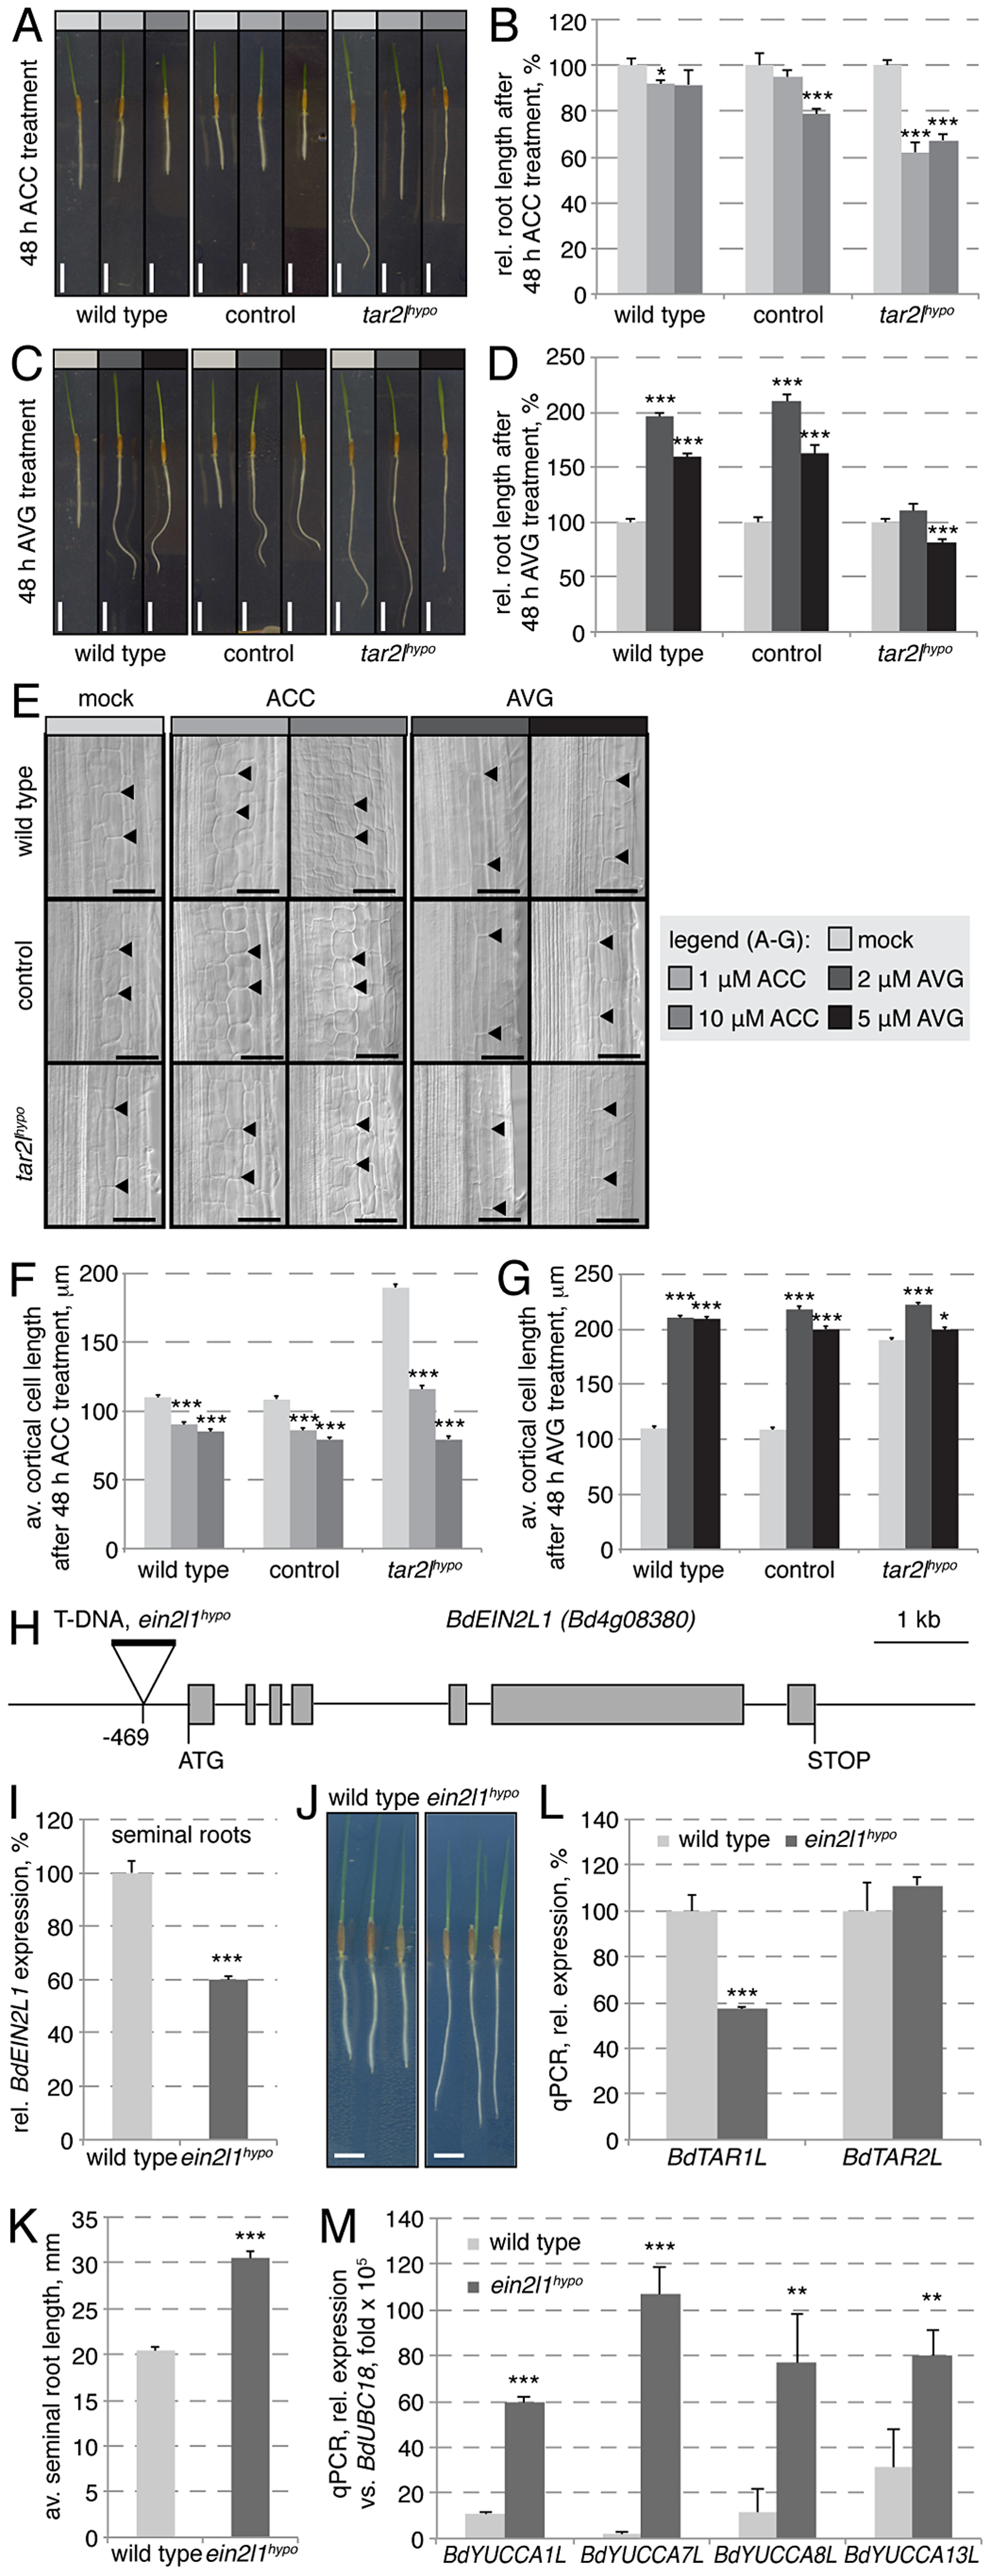 Manipulation of the ethylene pathway and its impact on root growth.